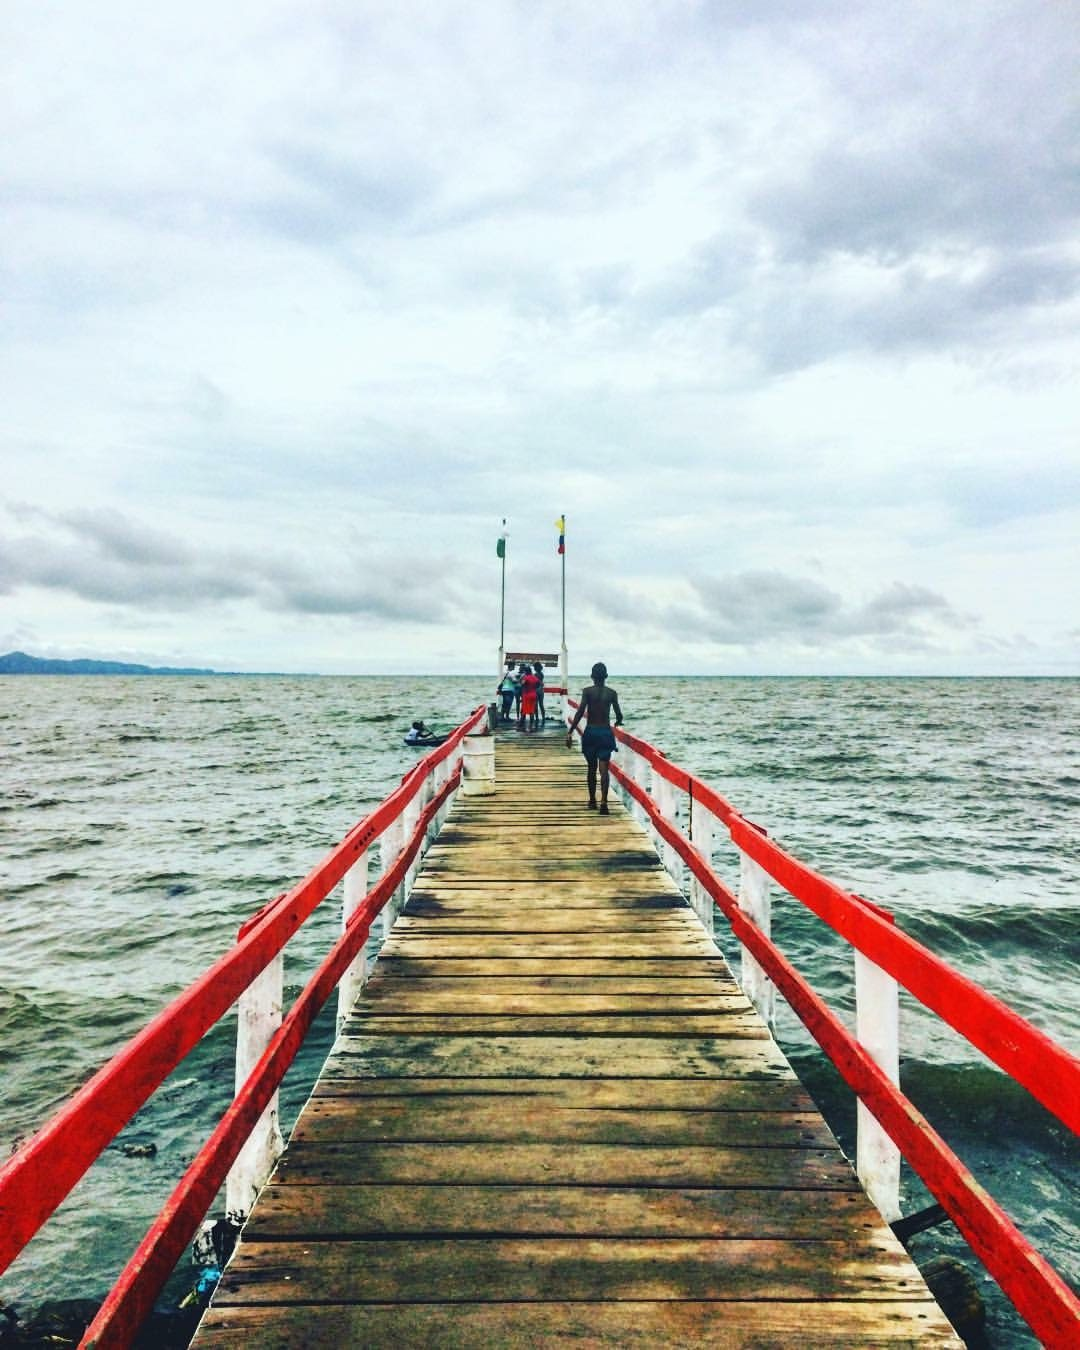 Nuquí, Colombia. Photo: Alejandra Artunduaga